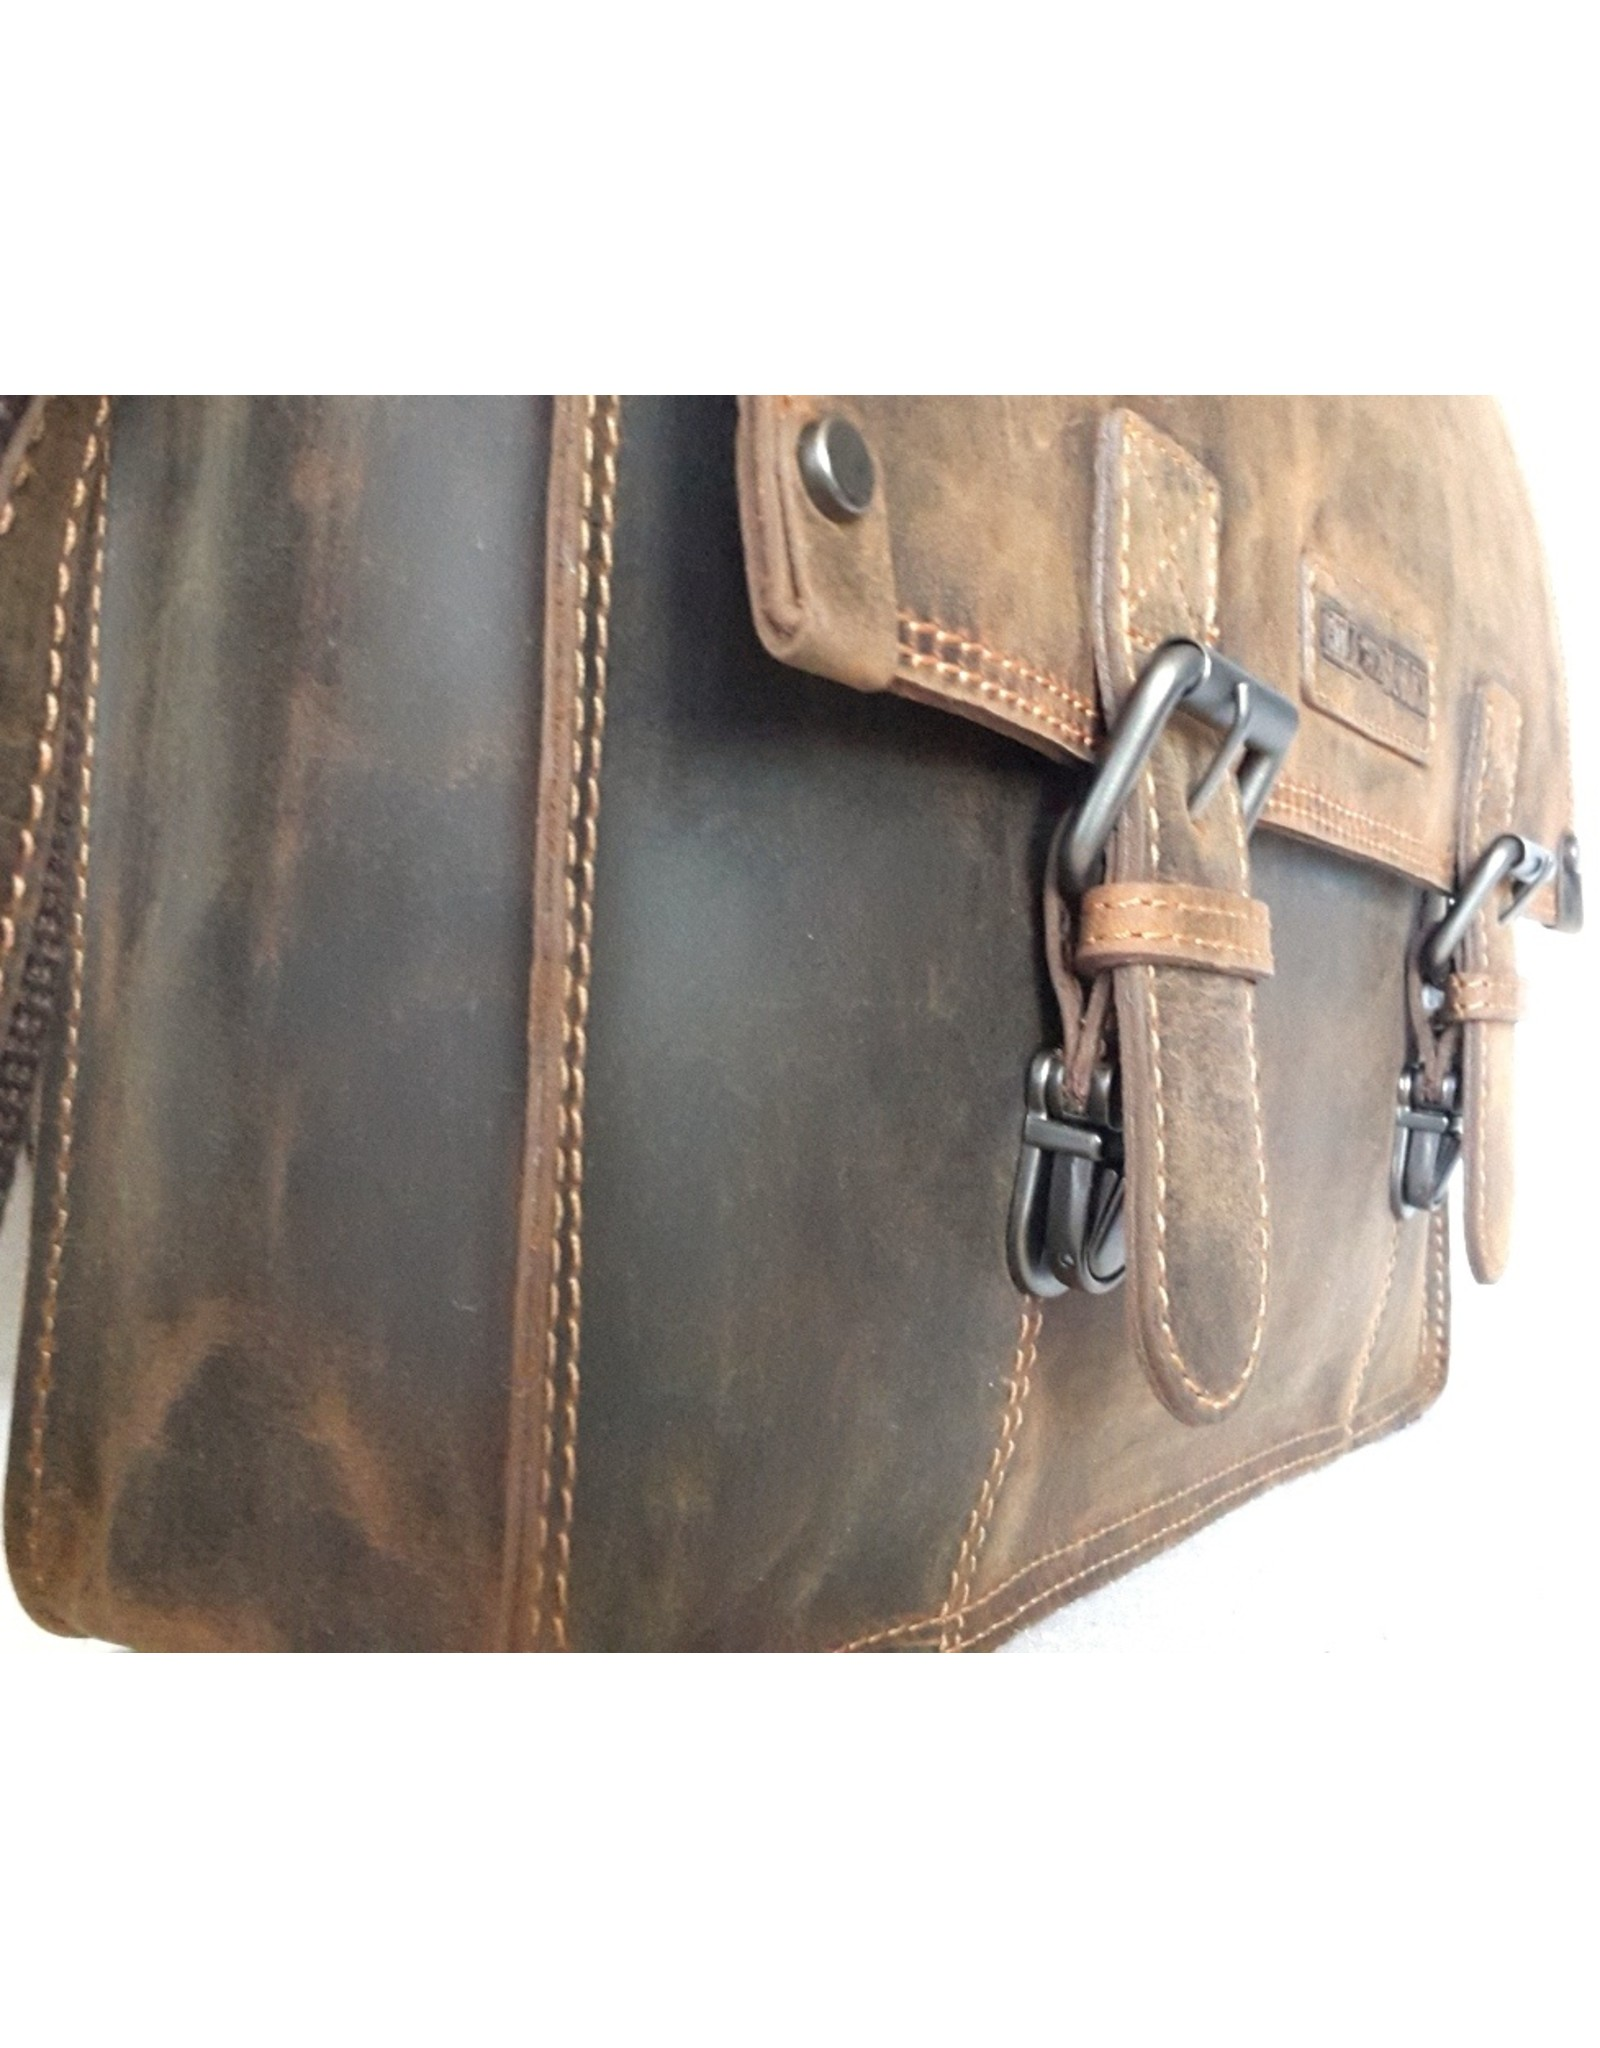 HillBurry Leather laptop bags - HillBurry Leather school bag vintage look (large)